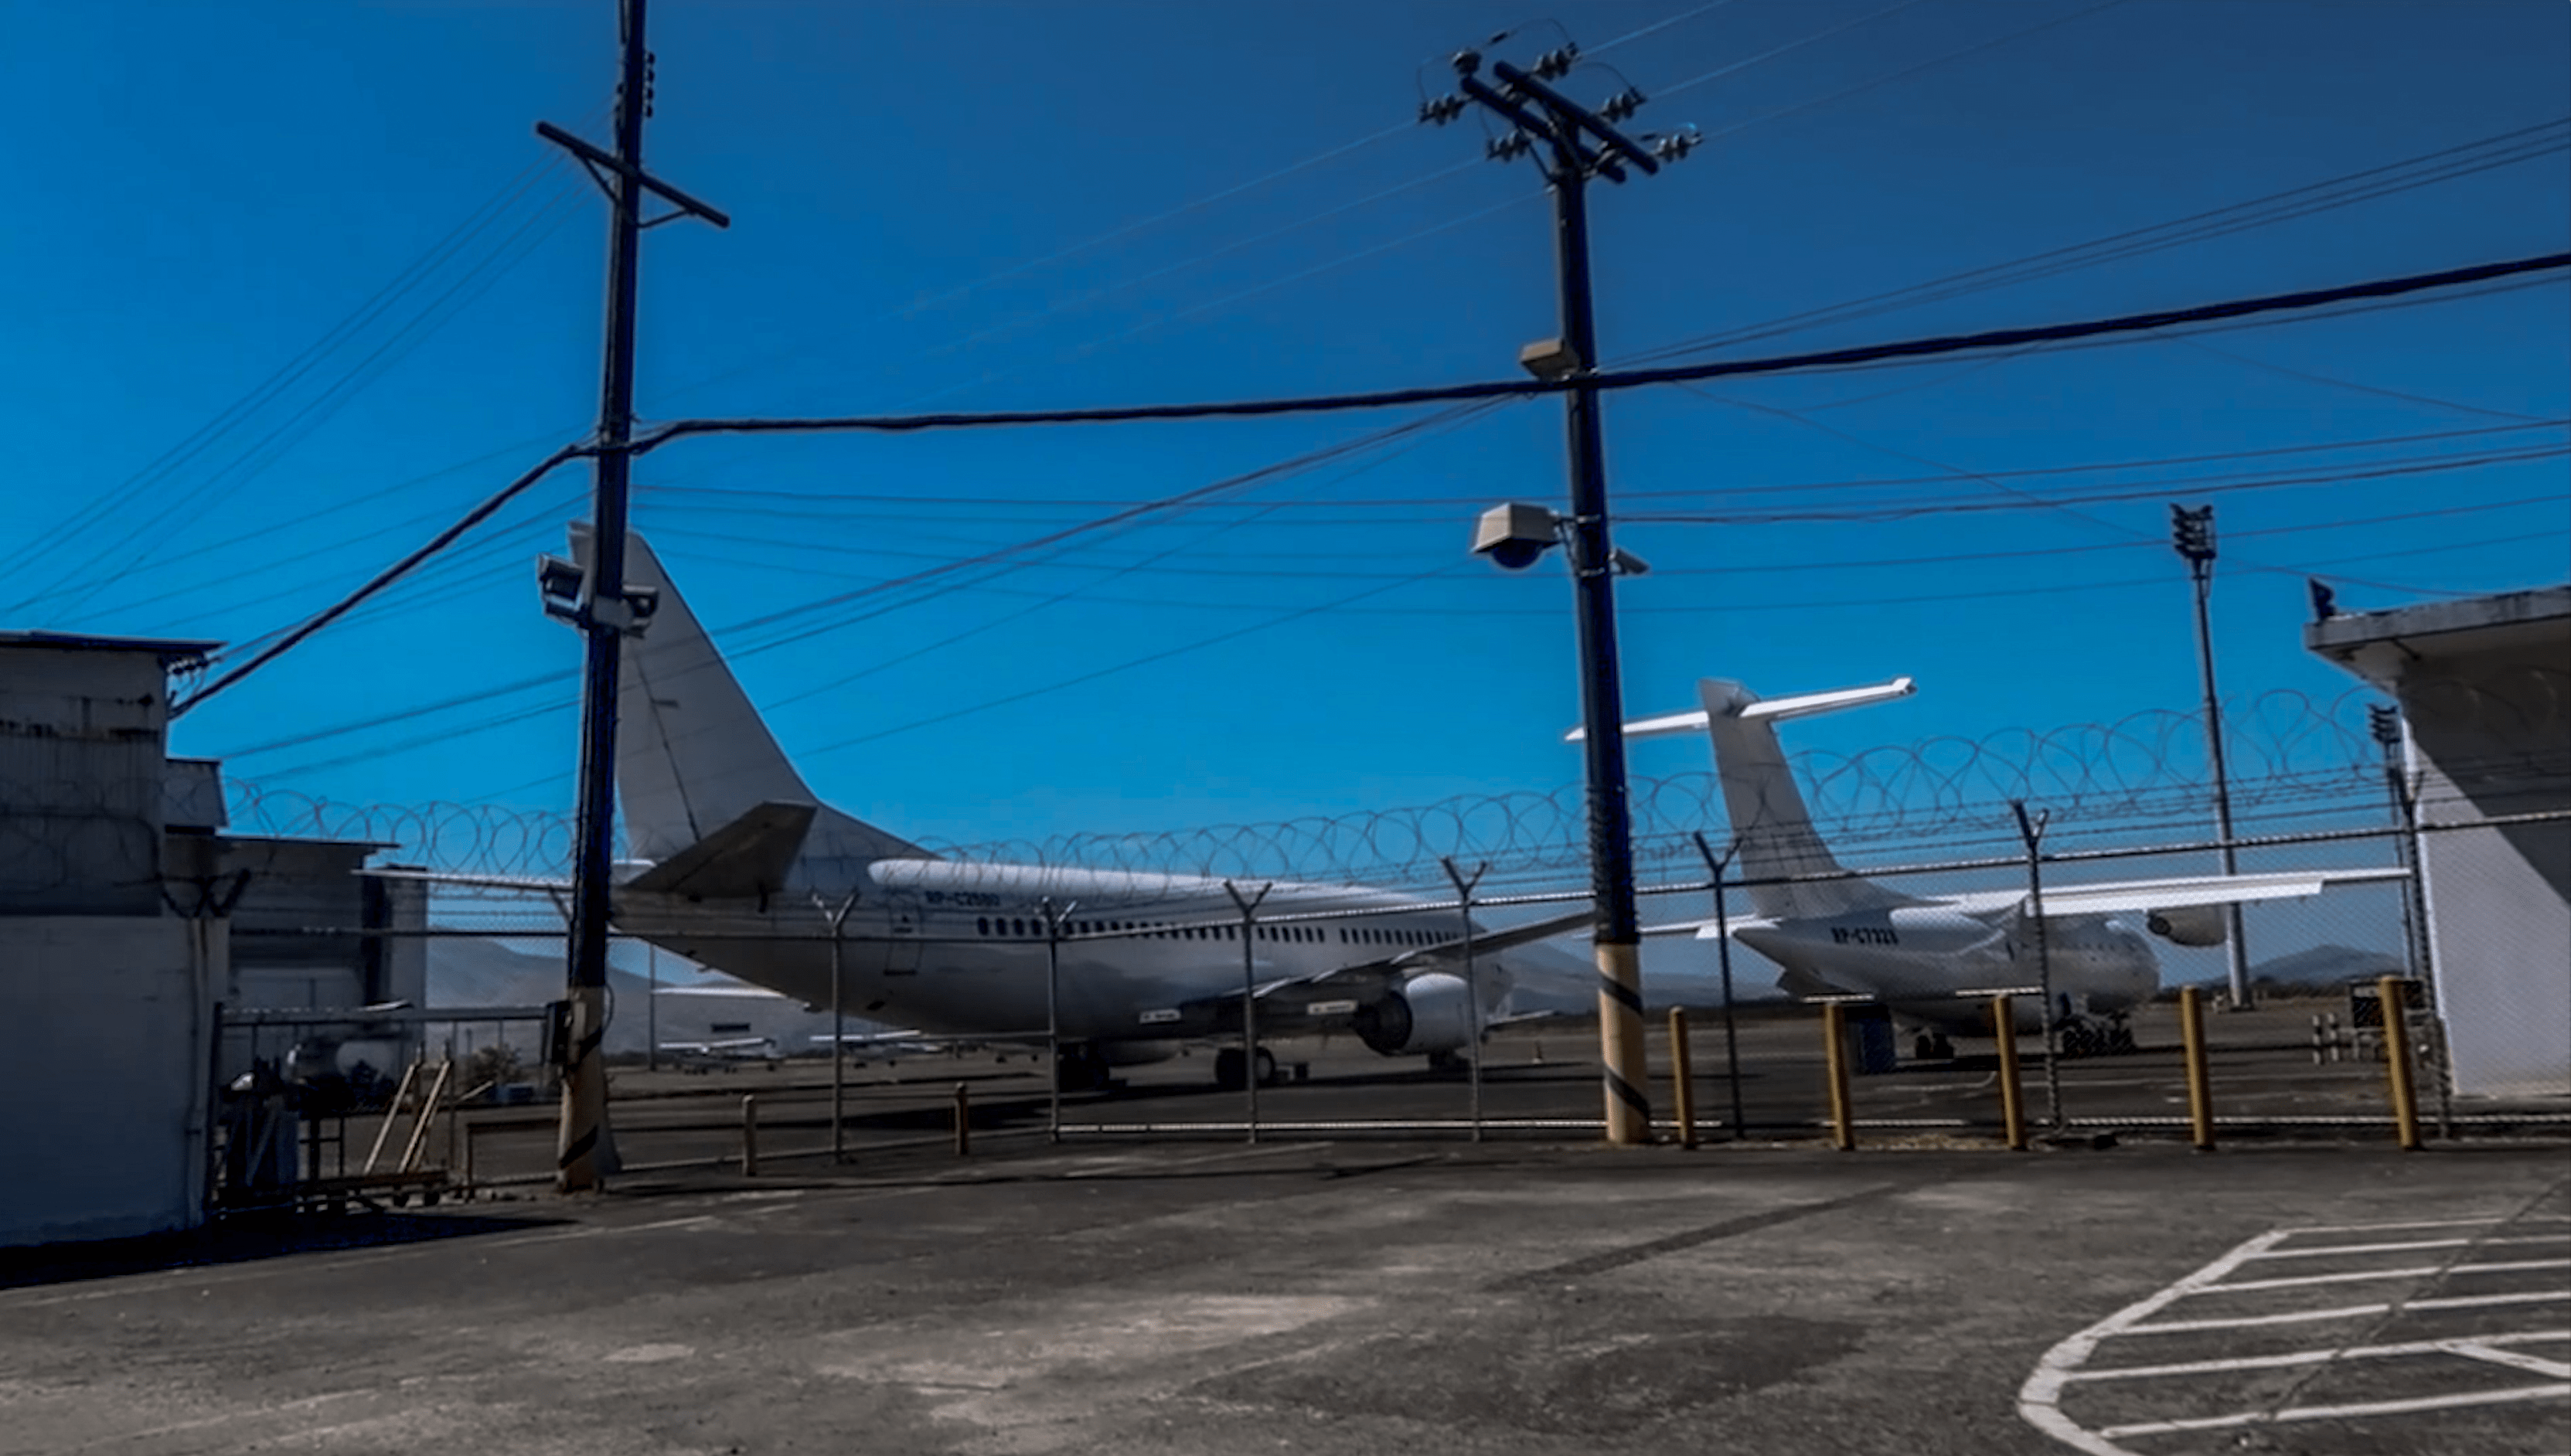 two large airplanes in airport in subic freeport area zambales philippines